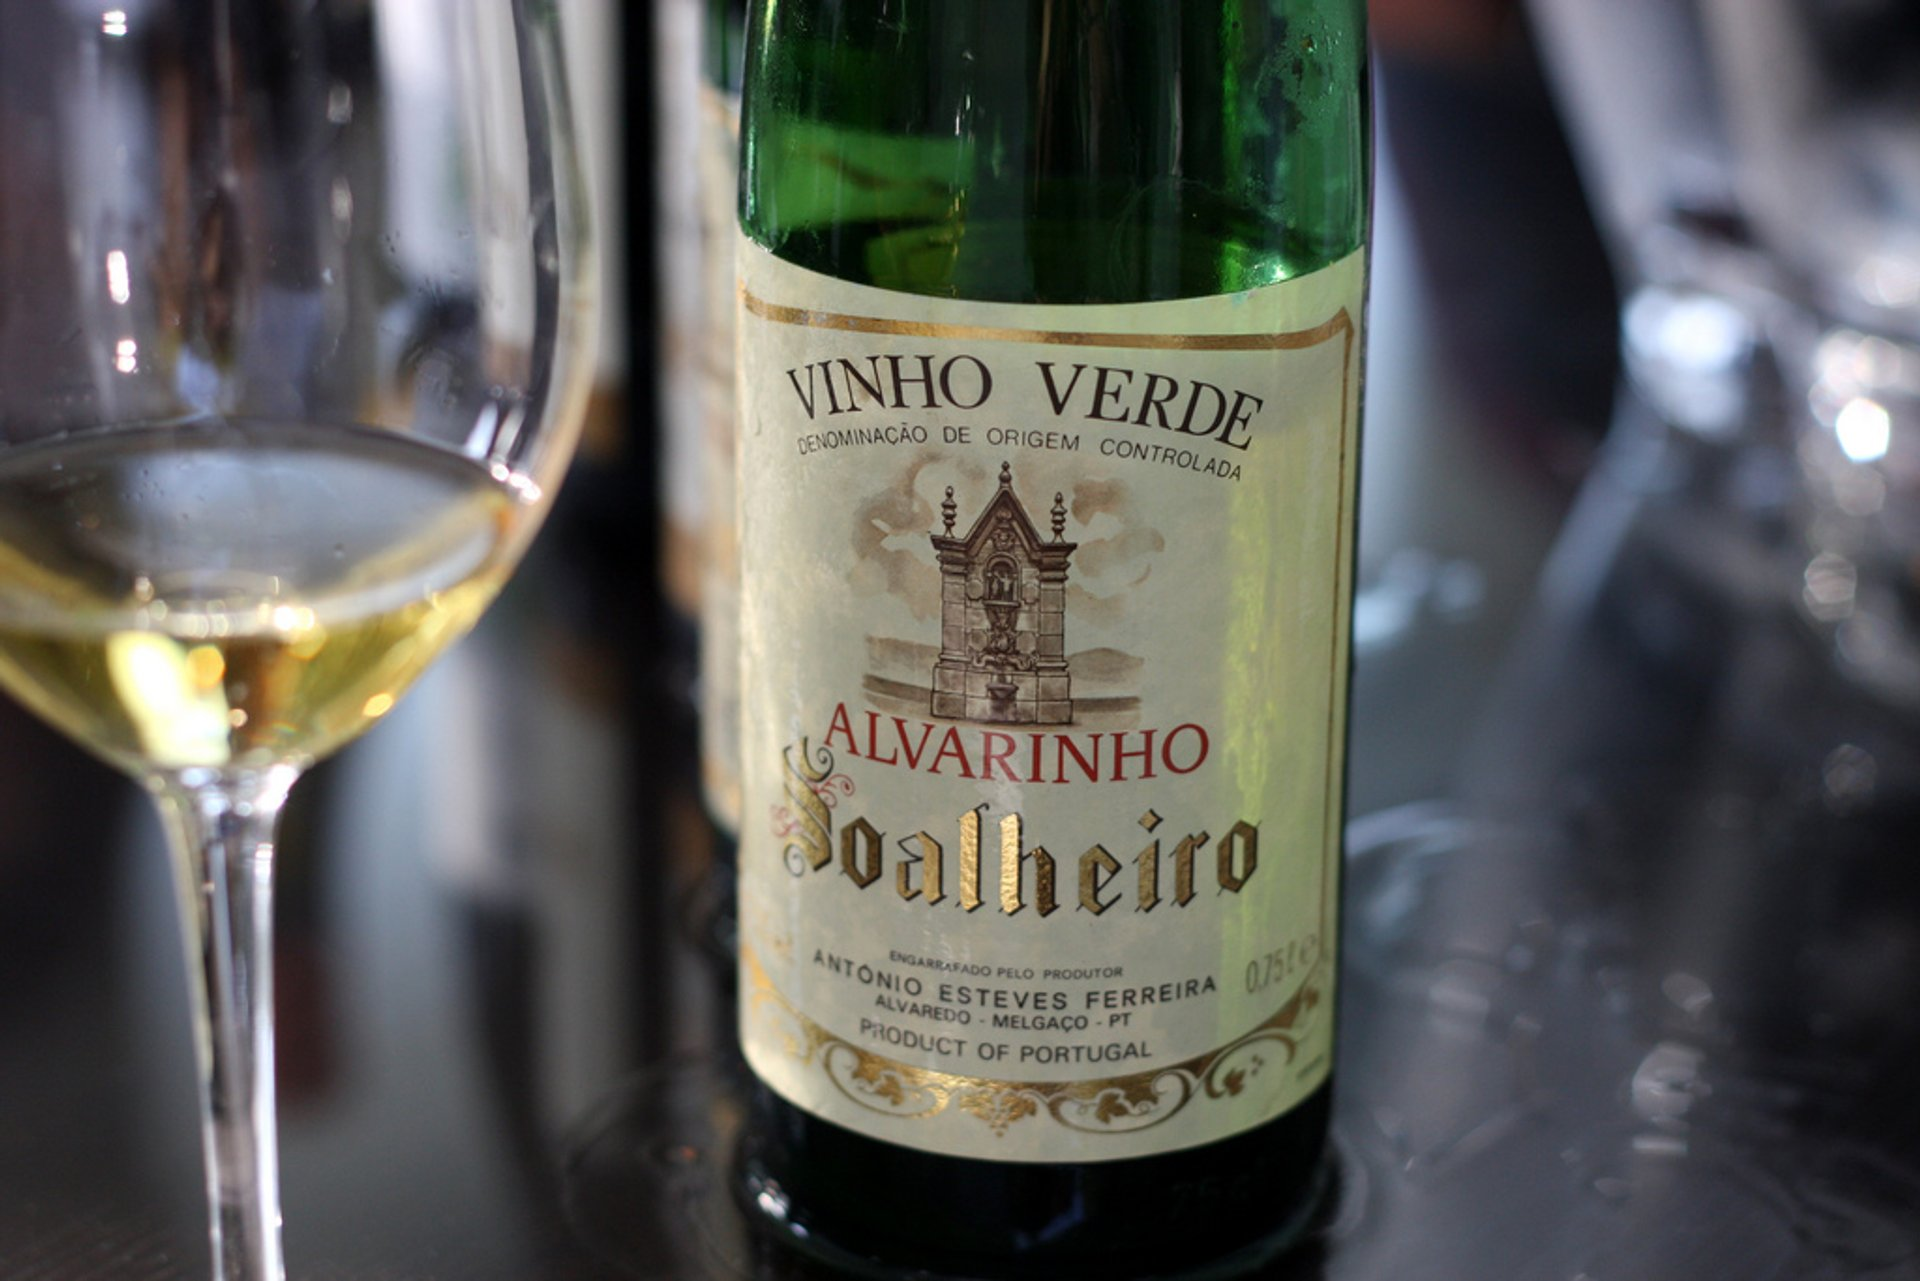 Vinho Verde in Portugal 2020 - Best Time